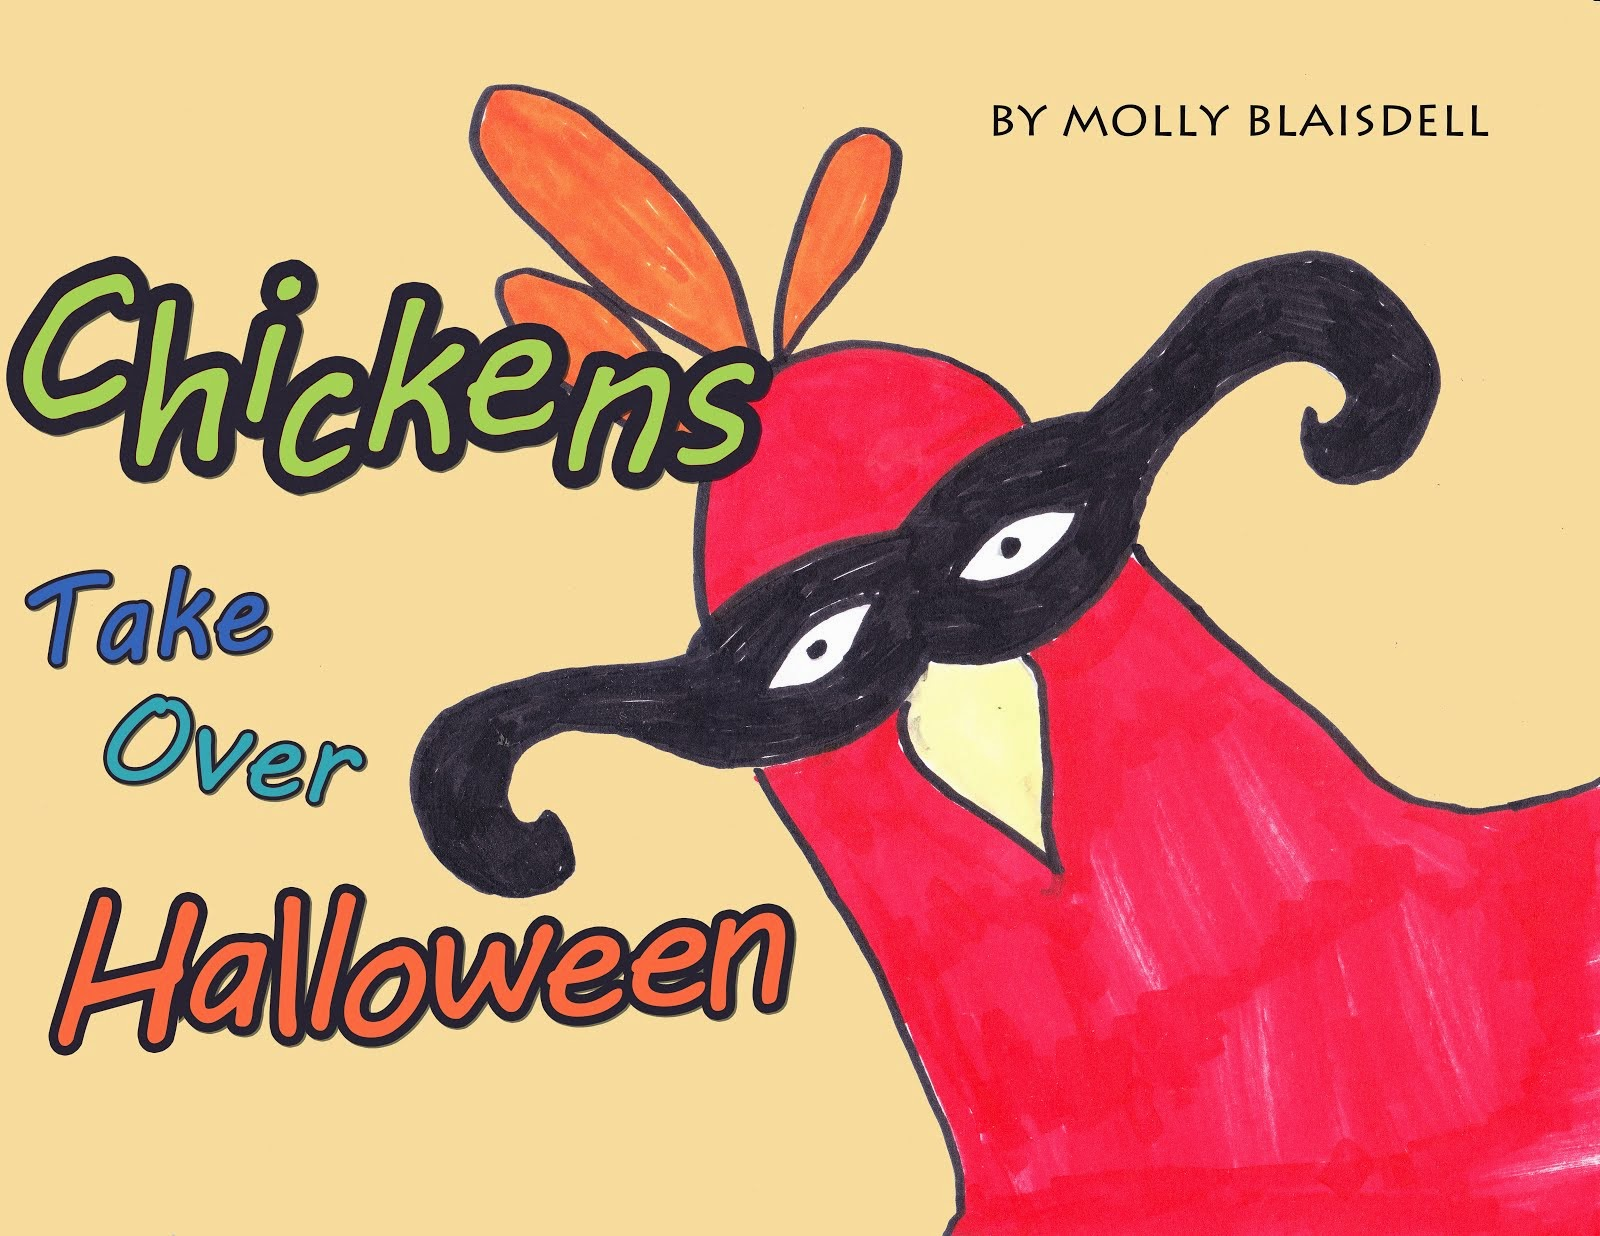 Chickens Take Over Halloween